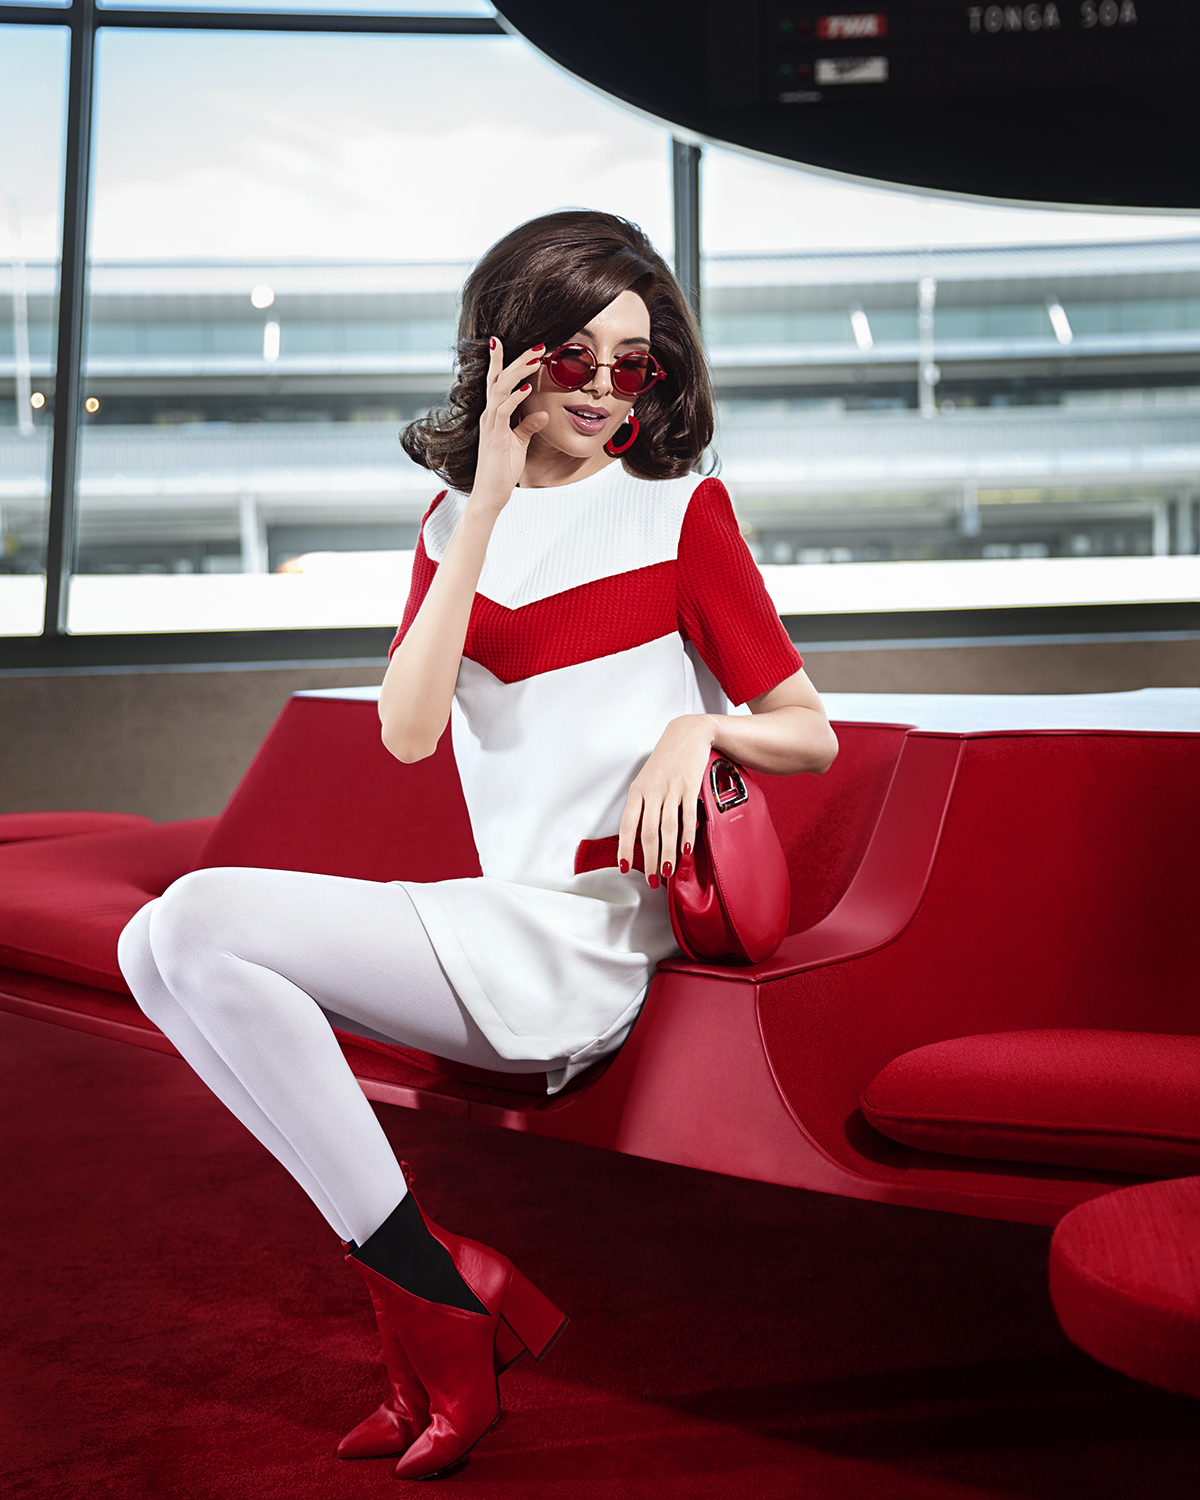 lauren nakao winn, photography, editorial photography, fashion, 60s, twa, twa hotel, trans world airlines, gogo, jackie o, jackie kennedy, the first lady, space race, jet age, star trek, 1963, 1962, 60s photoshoot, mad men, megan draper, megan calvet, jessica pare